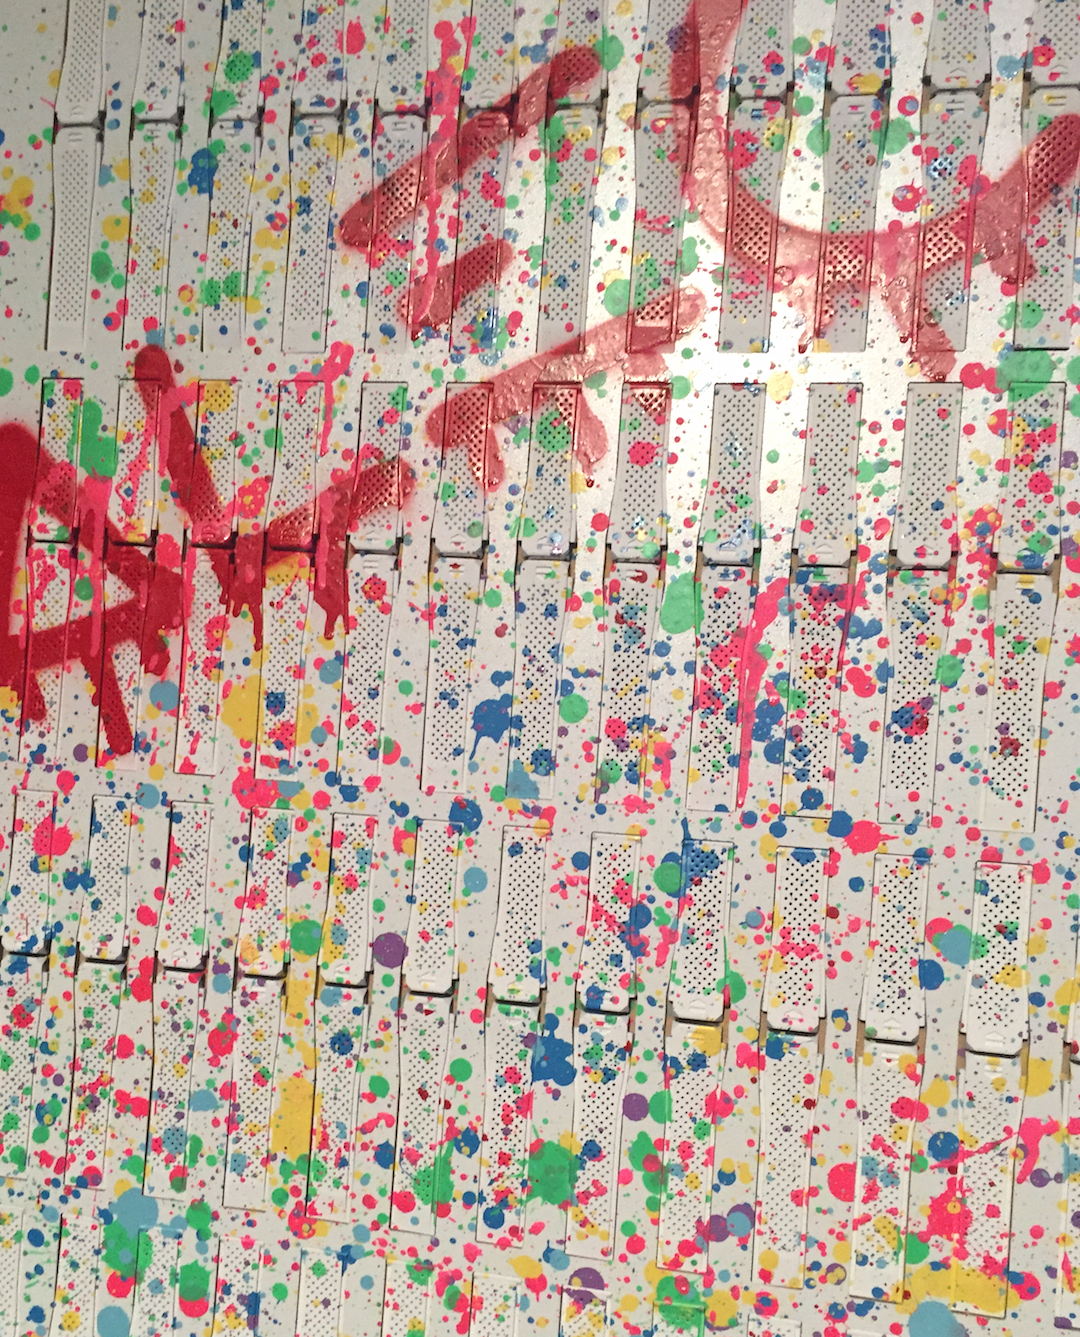 Alec Monopoly completed the painting of the 300 straps during the Art Basel Miami TAG Heuer event. Straps placed in the upper left corner of the board will have a bold red line that is part of his signature.